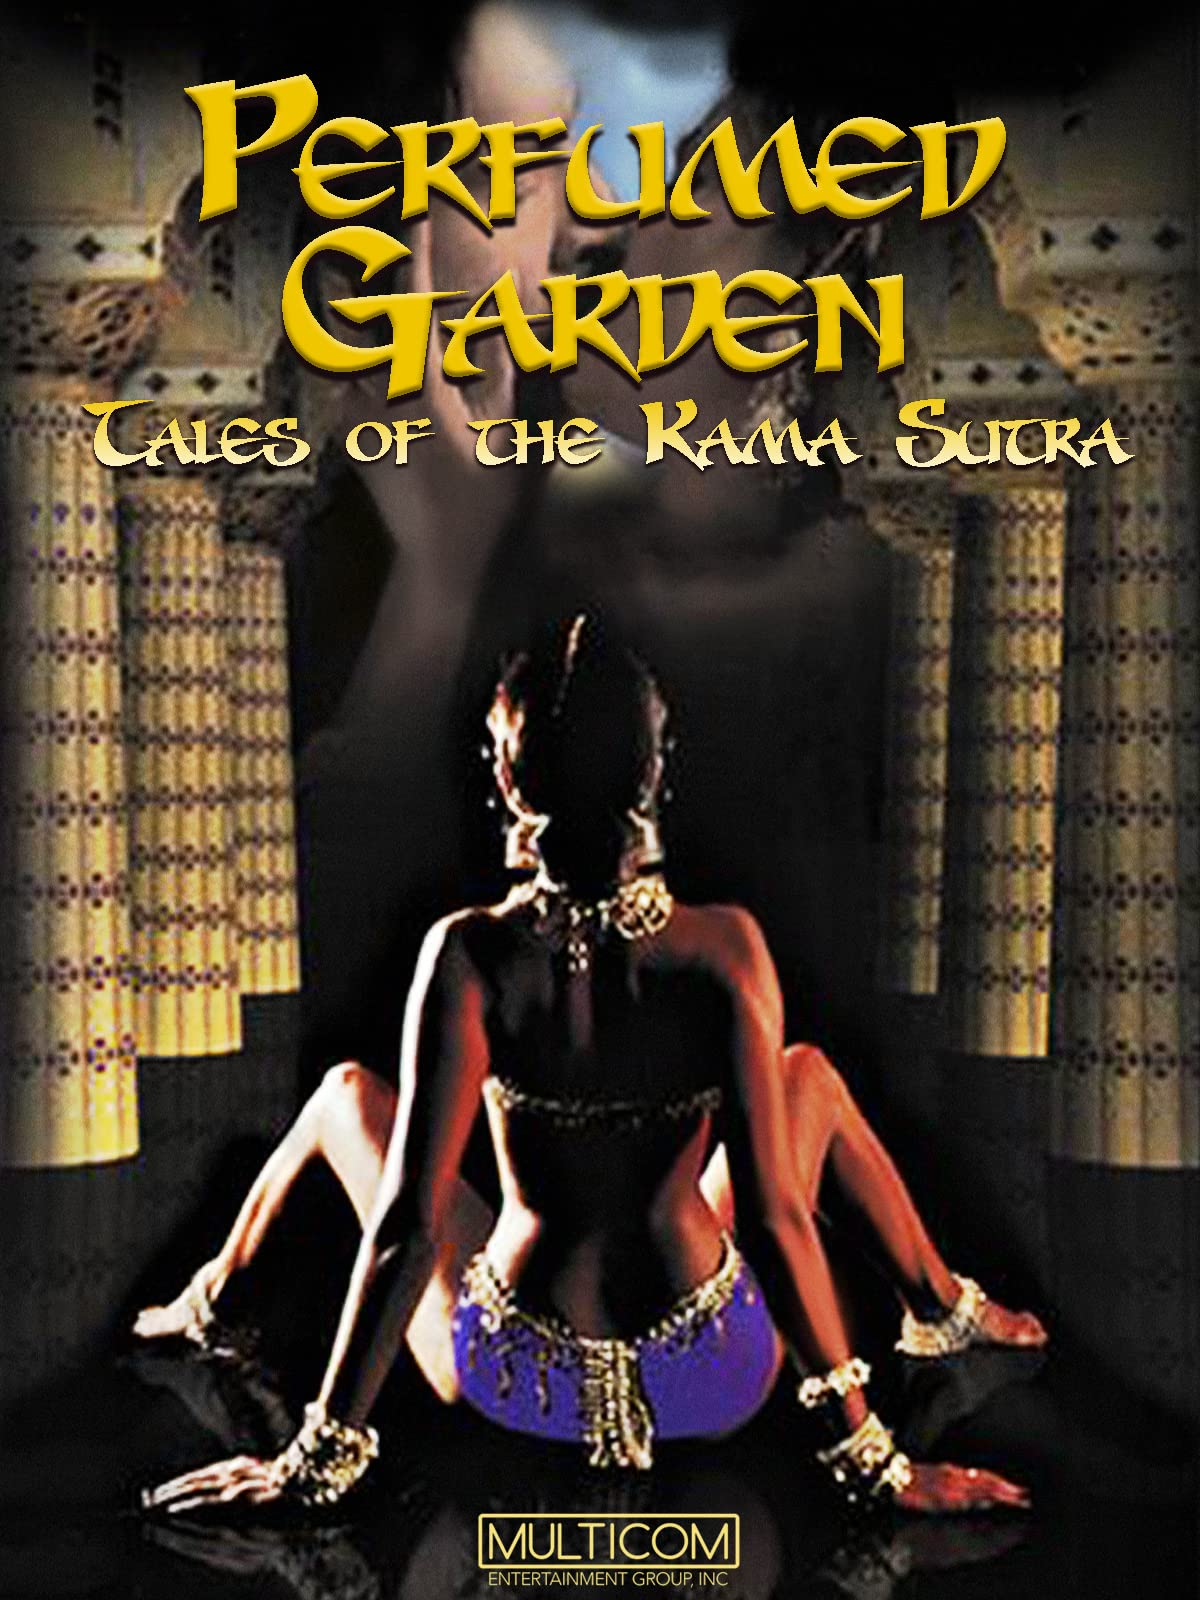 Perfumed Garden: Tales of the Kama Sutra (2000)